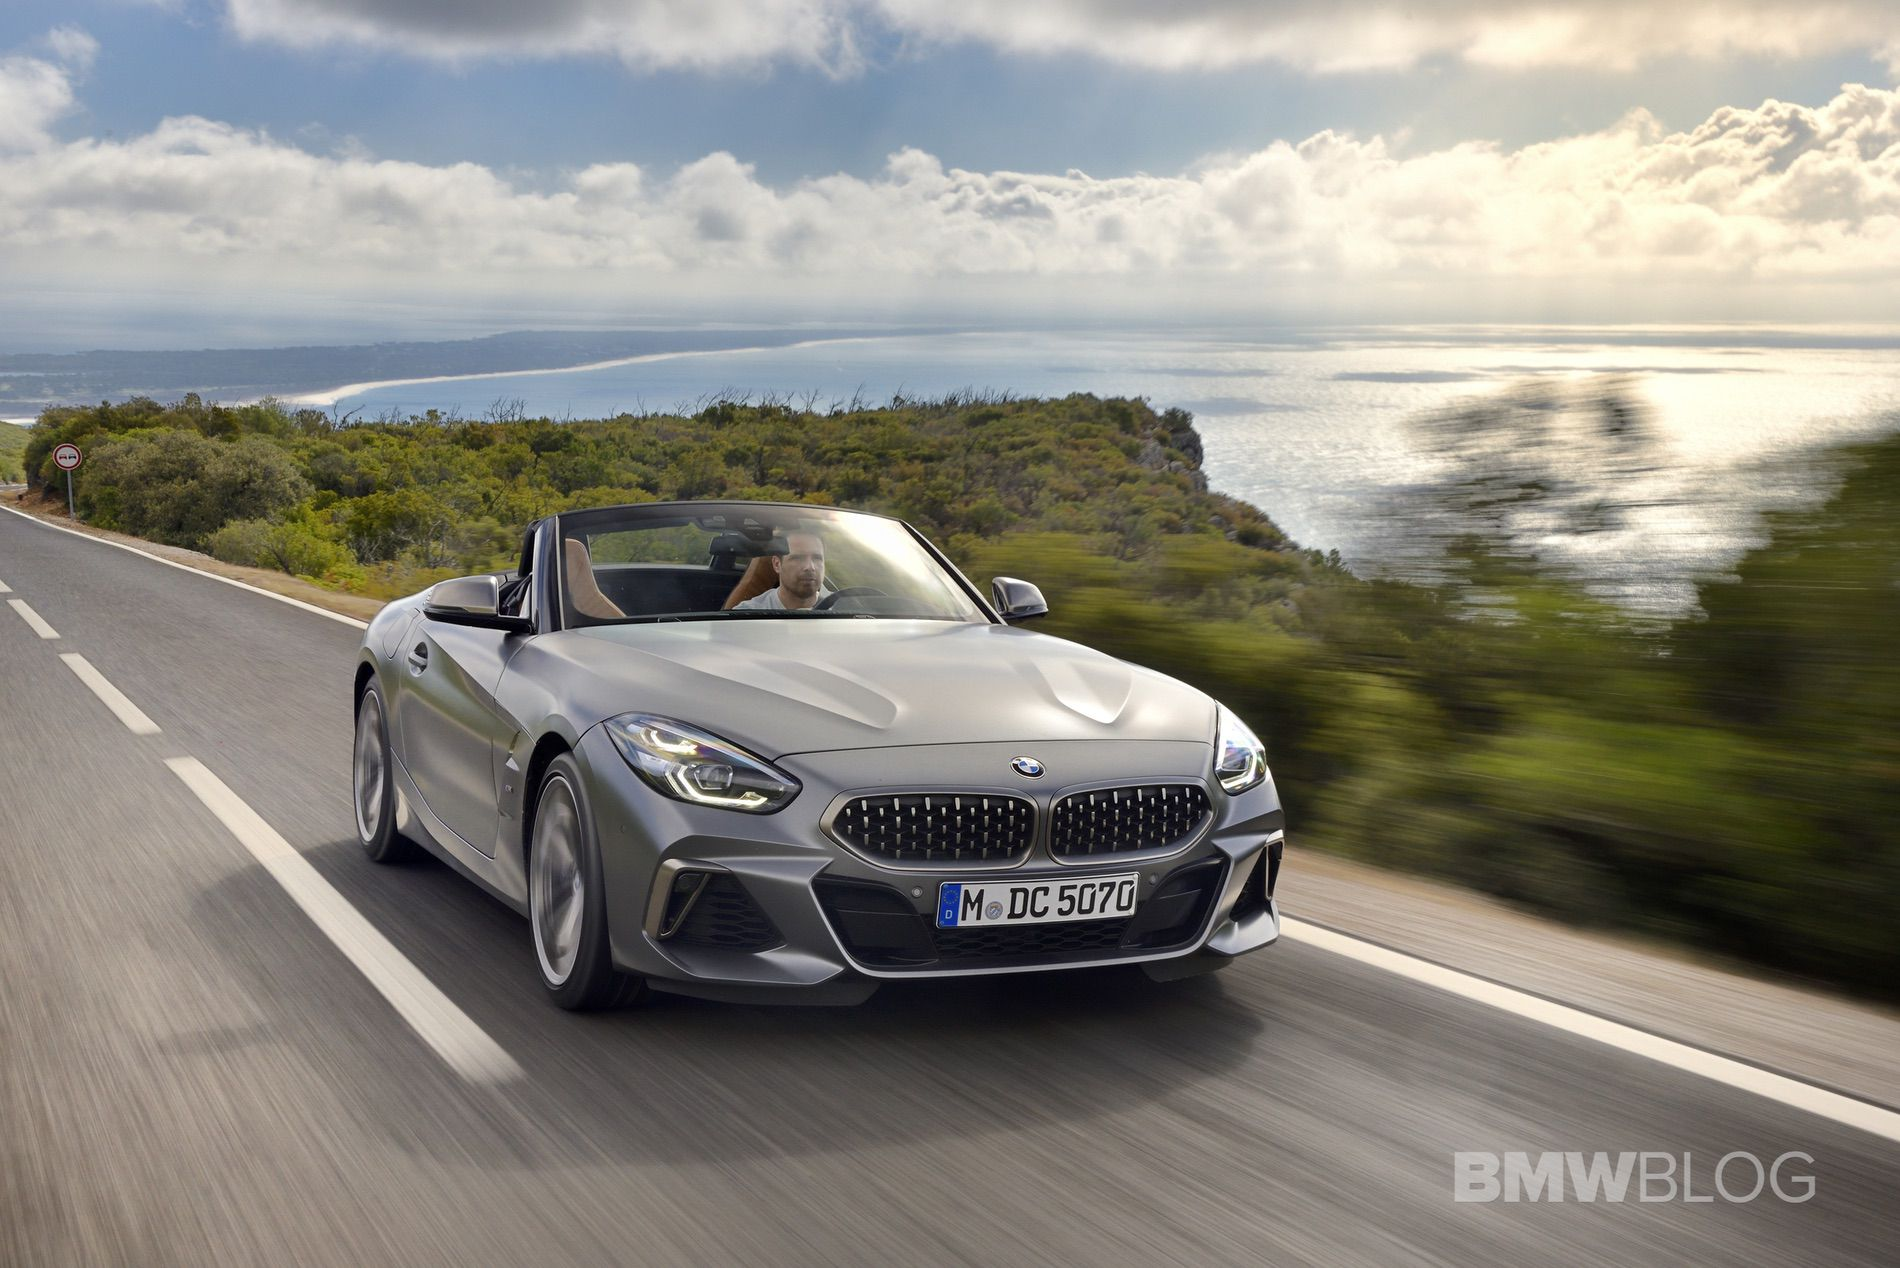 Bmw Usa Announces The Official 0 60 Mph Time For The Z4 M40i